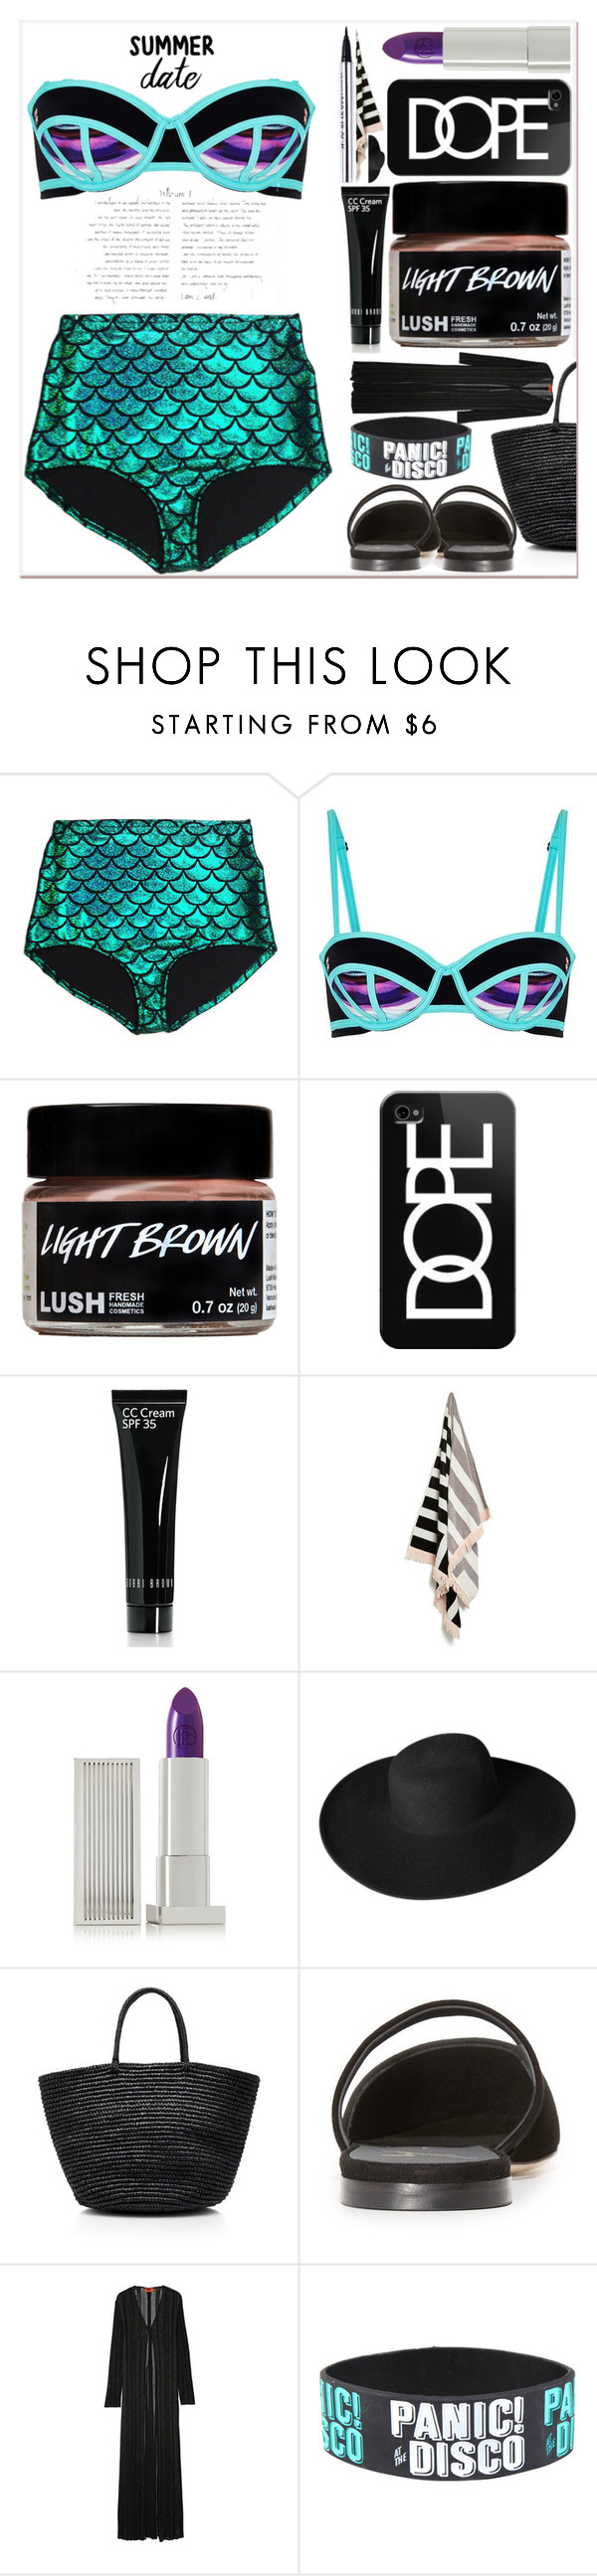 Summer Date :The Beach #3 by dragananovcic on Polyvore featuring moda, Missoni, Sweaty Betty, Giuseppe Zanotti, Sensi Studio, Casetify, Dorfman Pacific, Lipstick Queen, Bobbi Brown Cosmetics and summerstyle